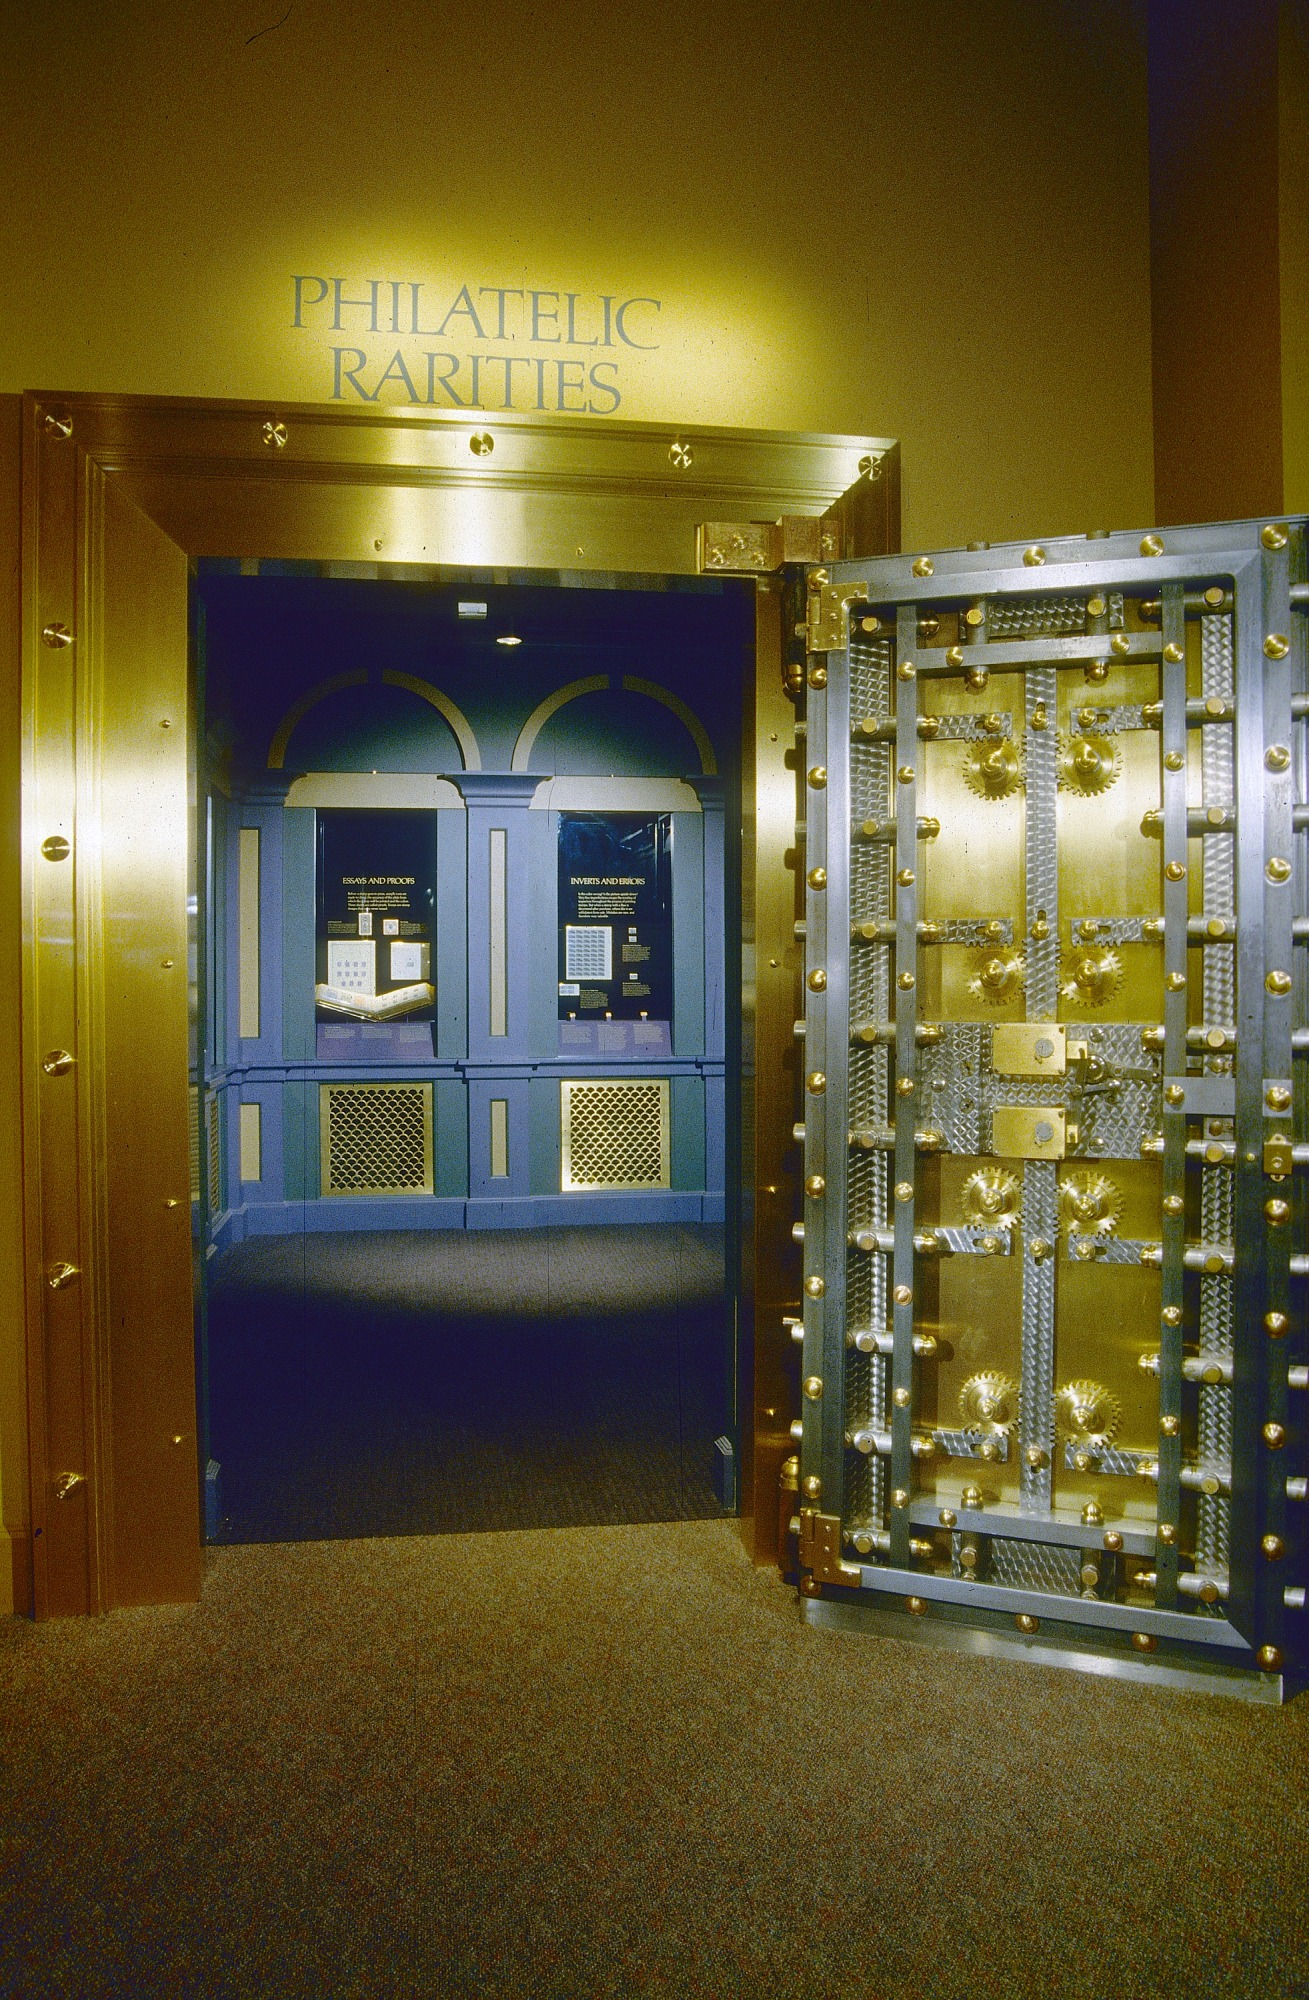 Entrance to Philatelic Rarities Vault at National Postal Museum